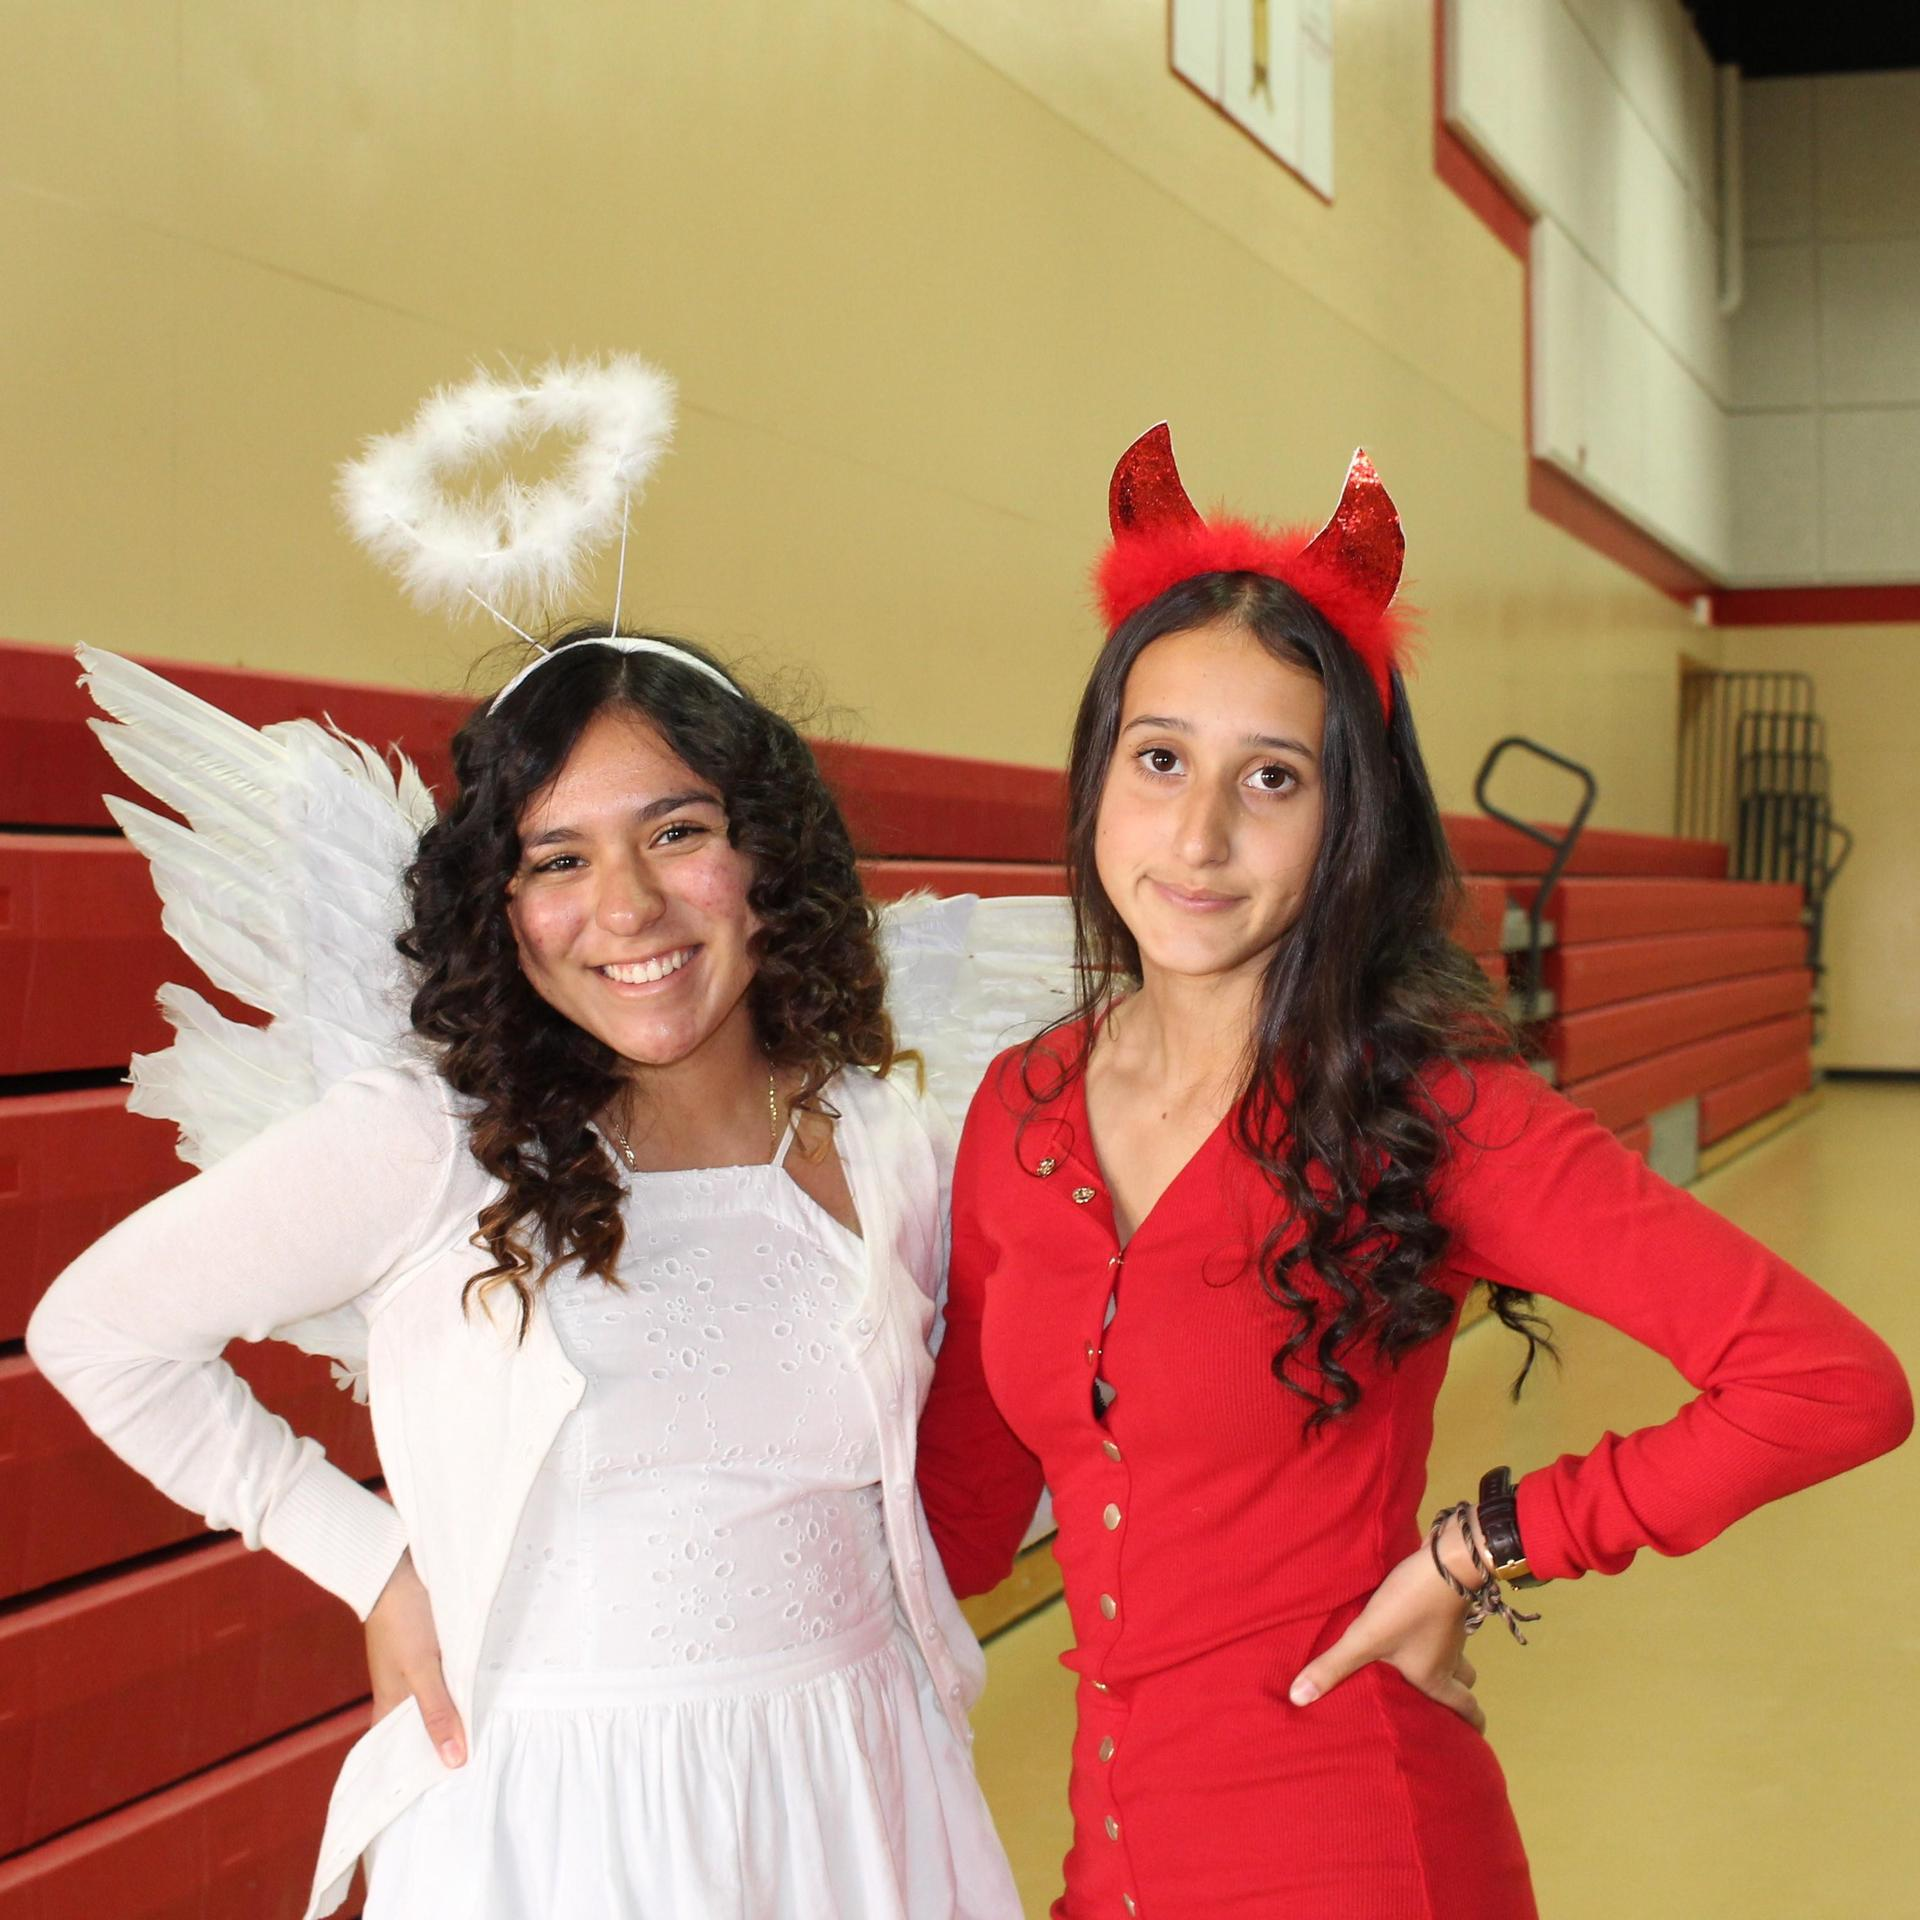 Esmeralda Espinoza and Angela Sandoval as angel and devil